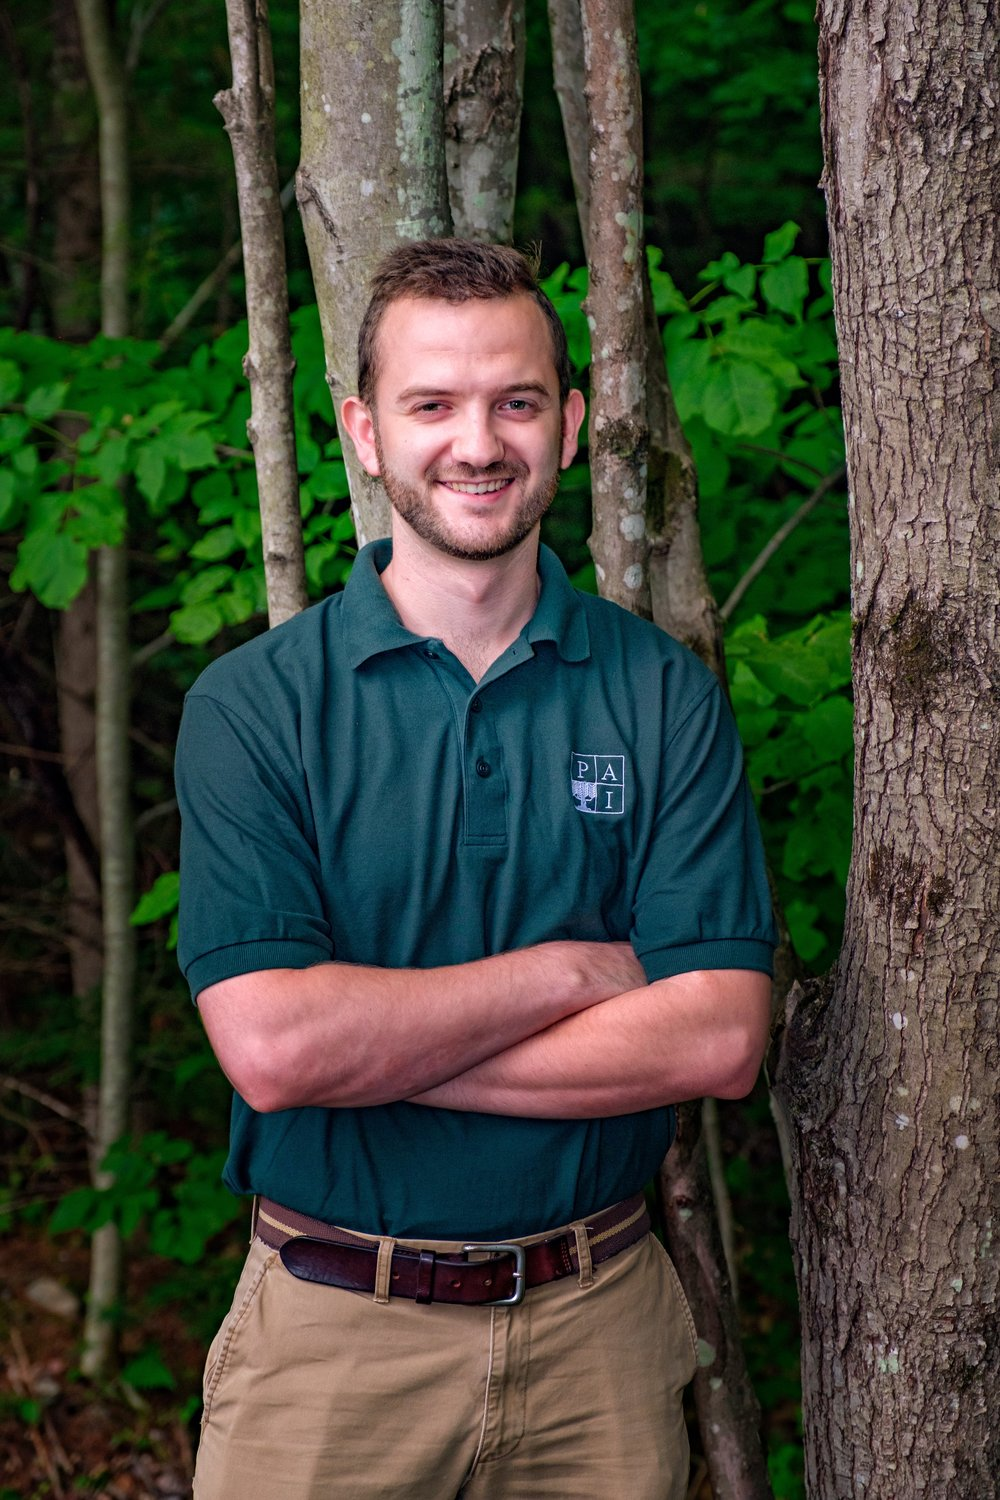 Cody Griffin - Landscape DesignerCody joined the PAI team in 2015.  He recieved his Bachelors of Science in Architecure from Keene State College.In his free time, Cody enjoys hiking the White Mountains, Snowboarding, origami, and spending time with his girlfriend, Tara and their rescue puppy, Bruschi.cgriffin@pellettieriassoc.com